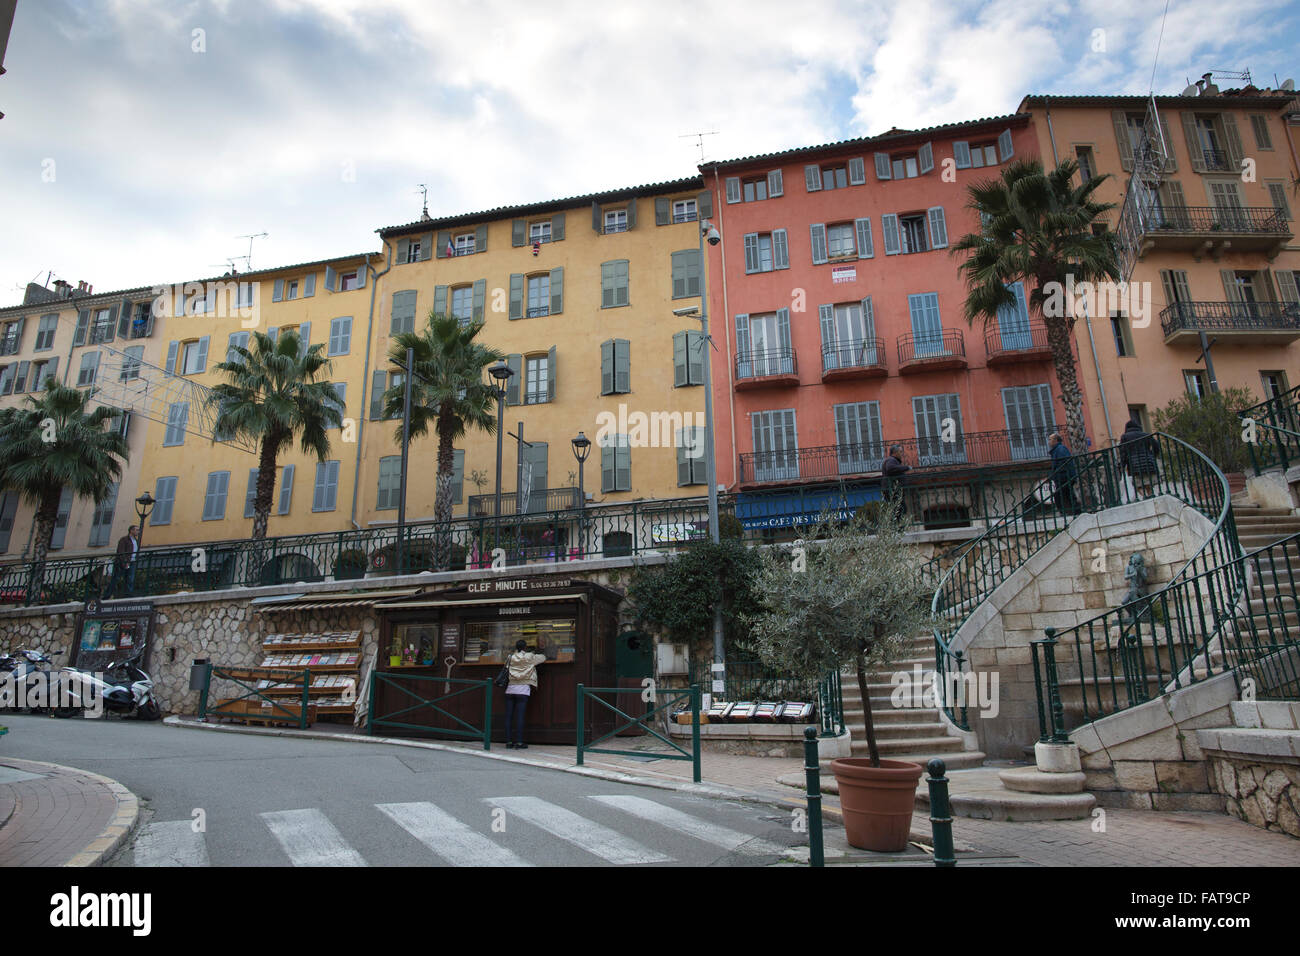 Grasse, 16th century village considered to be perfume capital of the world, Provence-Alpes-Côte d'Azur, - Stock Image